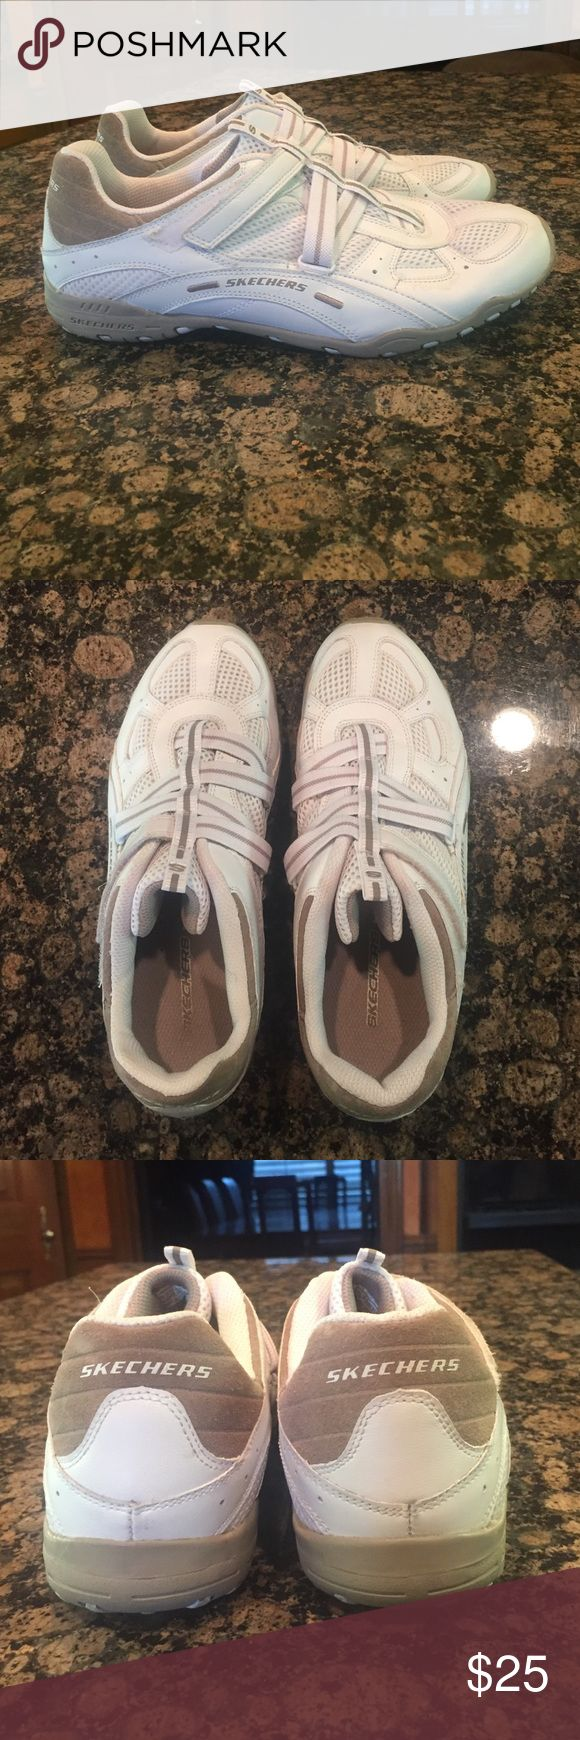 Sketchers tennis shoes Slip on Sketchers tennis shoes with side Velcro to open on side. Good condition and rarely worn. Skechers Shoes Athletic Shoes